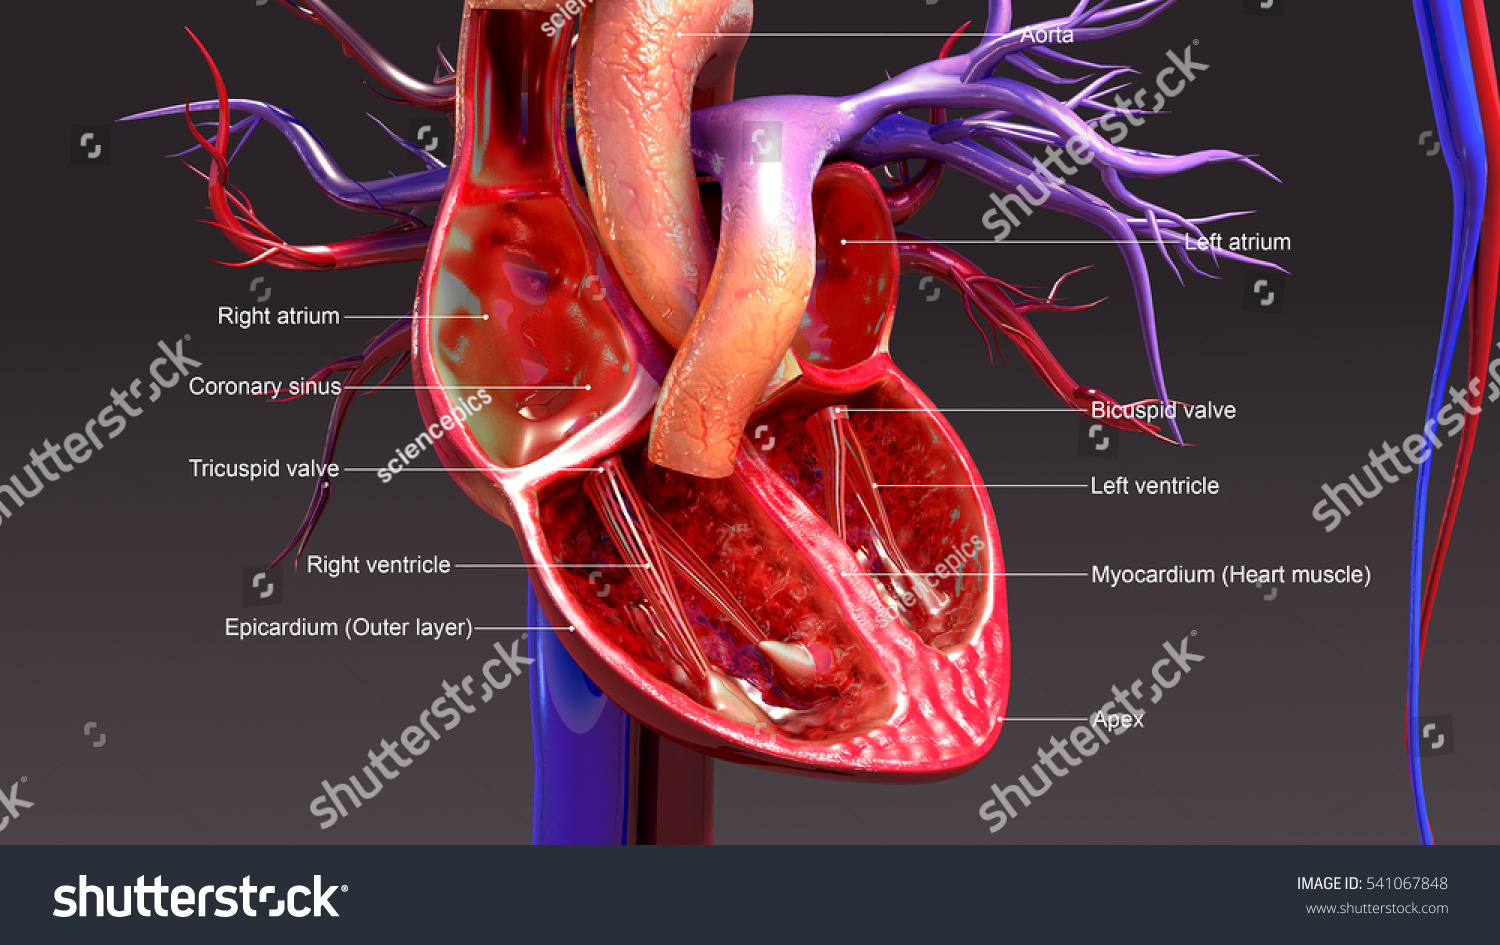 Human Heart Anatomy 3 D Illustration Stockillustration 541067848